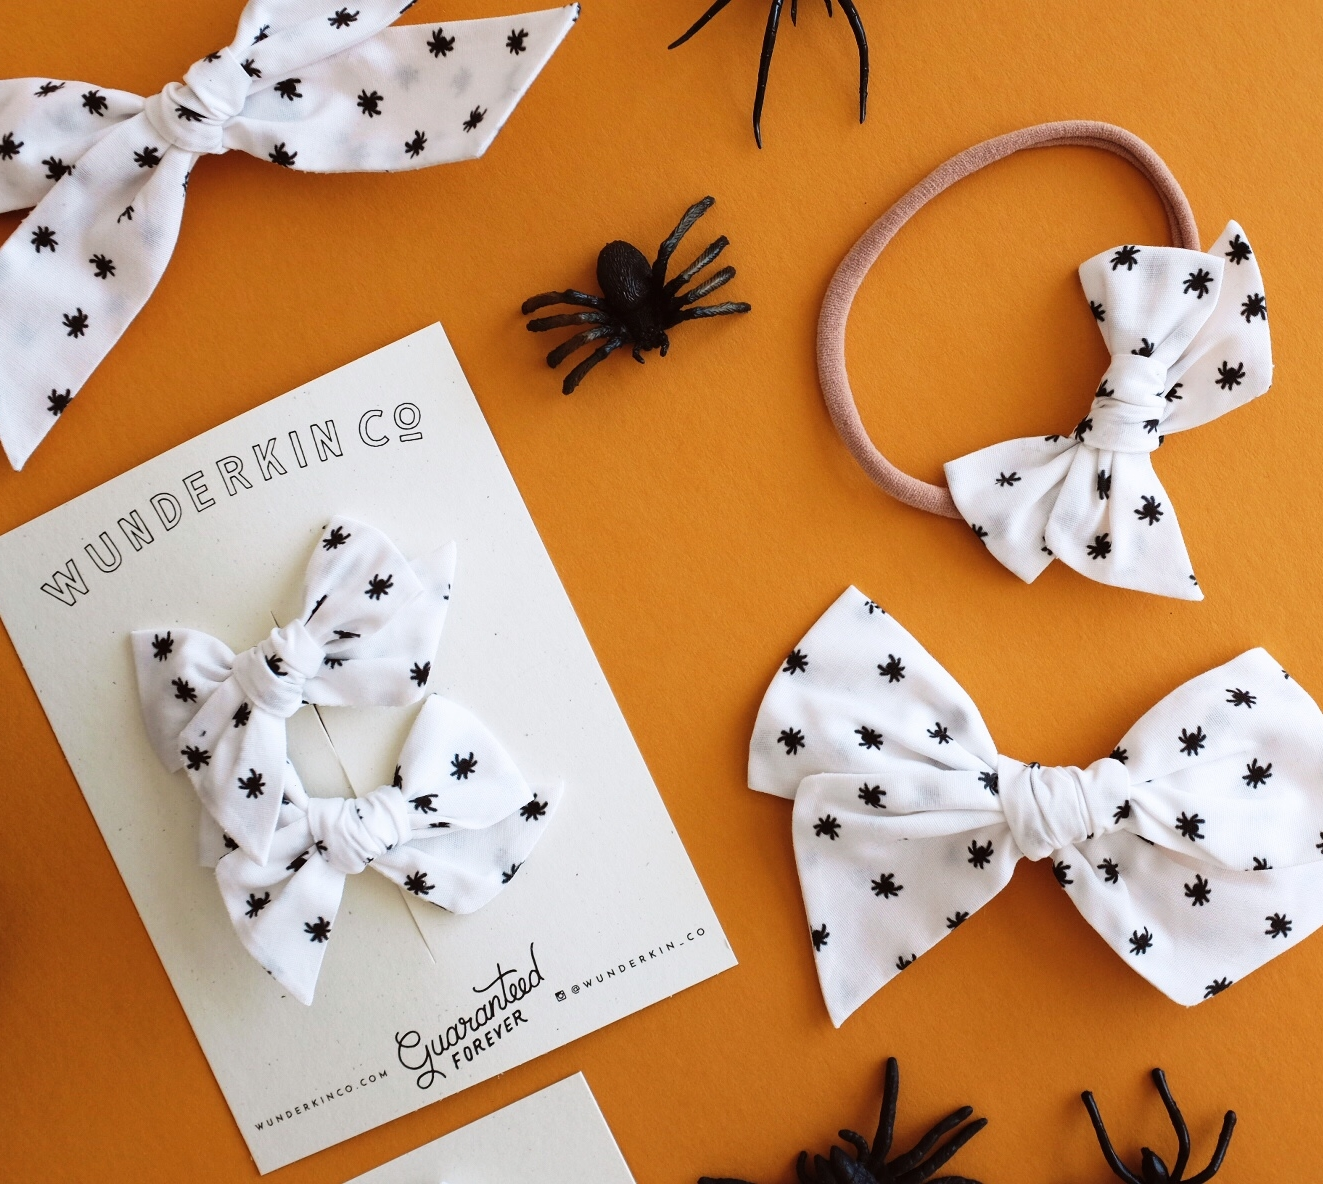 We've never been ashamed of our love for celebrating all holidays to the extreme, so when  H illary, from  Wunderkin Co. approached us about doing an exclusive Halloween pattern for their hand-crafted, heirloom bows, the answer was obvious! Introducing the first  @ampersandstudio x  @wunderkin_co print - a ditsy spider that is somehow oh so cute, but just perfectly creepy at the same time! What do you guys think?